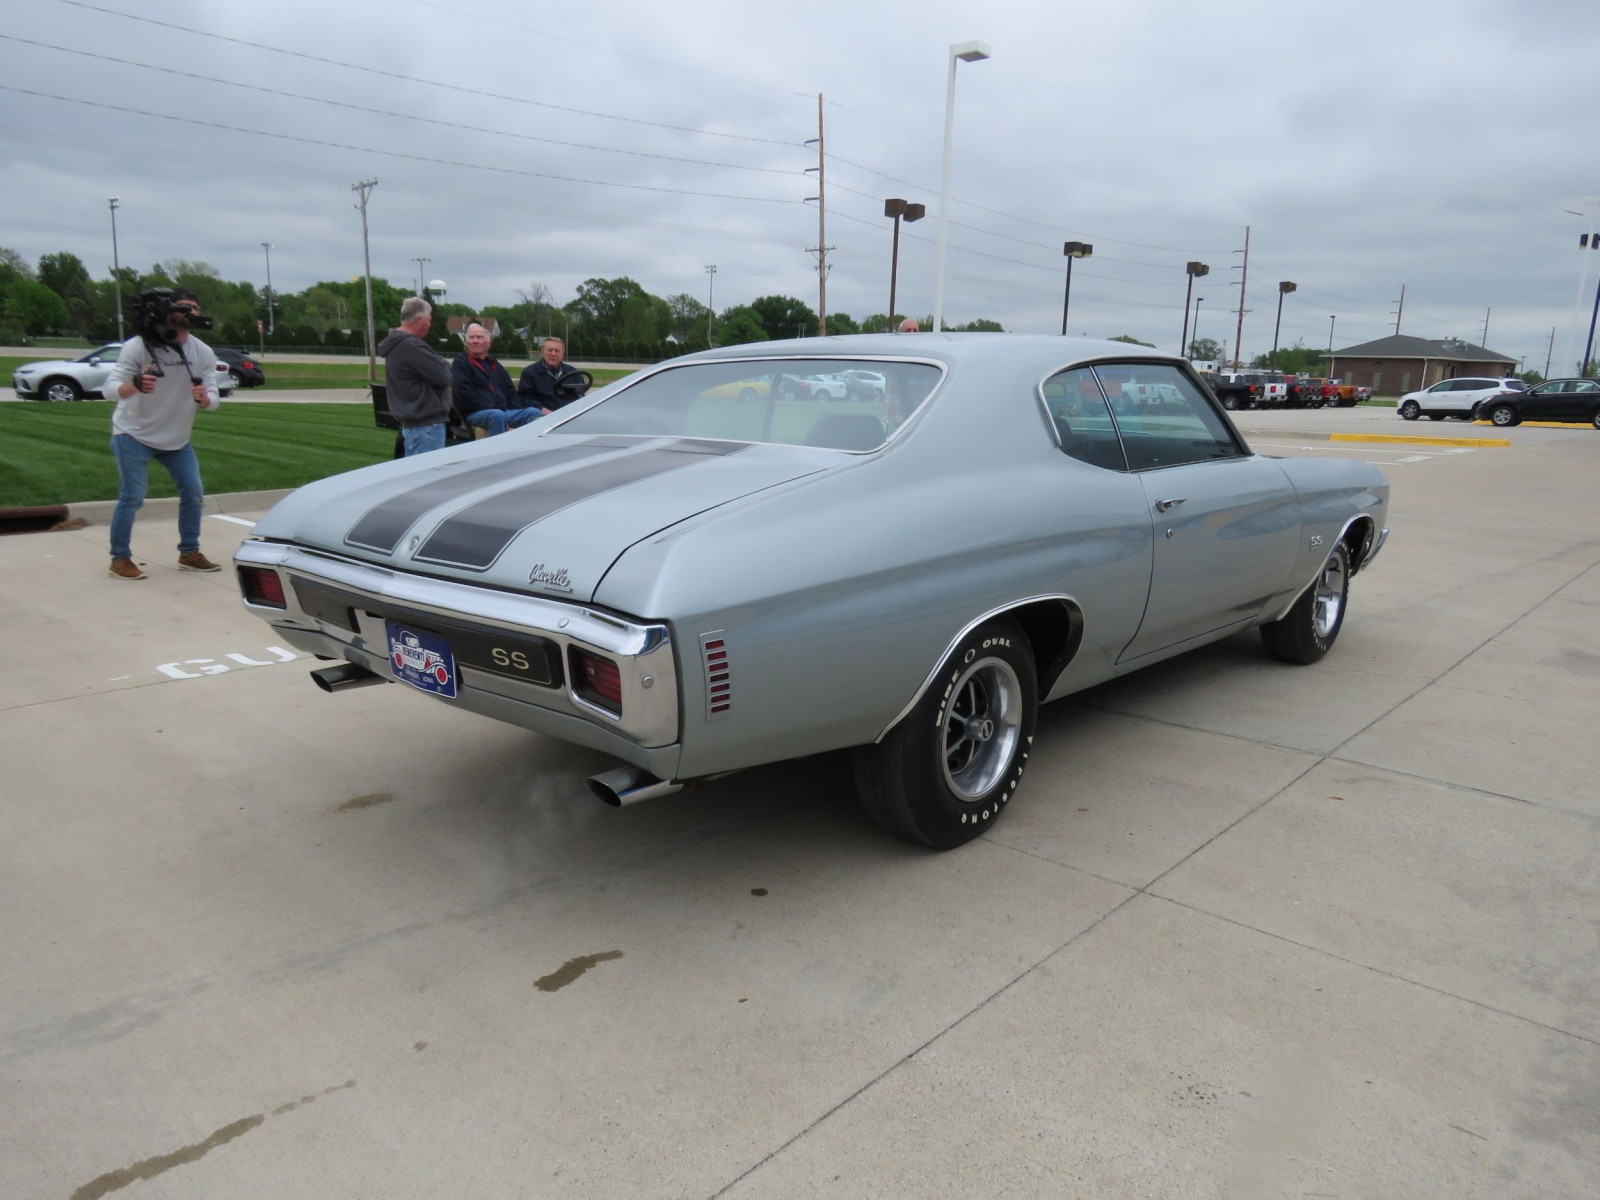 1970 Chevrolet Chevelle SS Coupe - Image 8